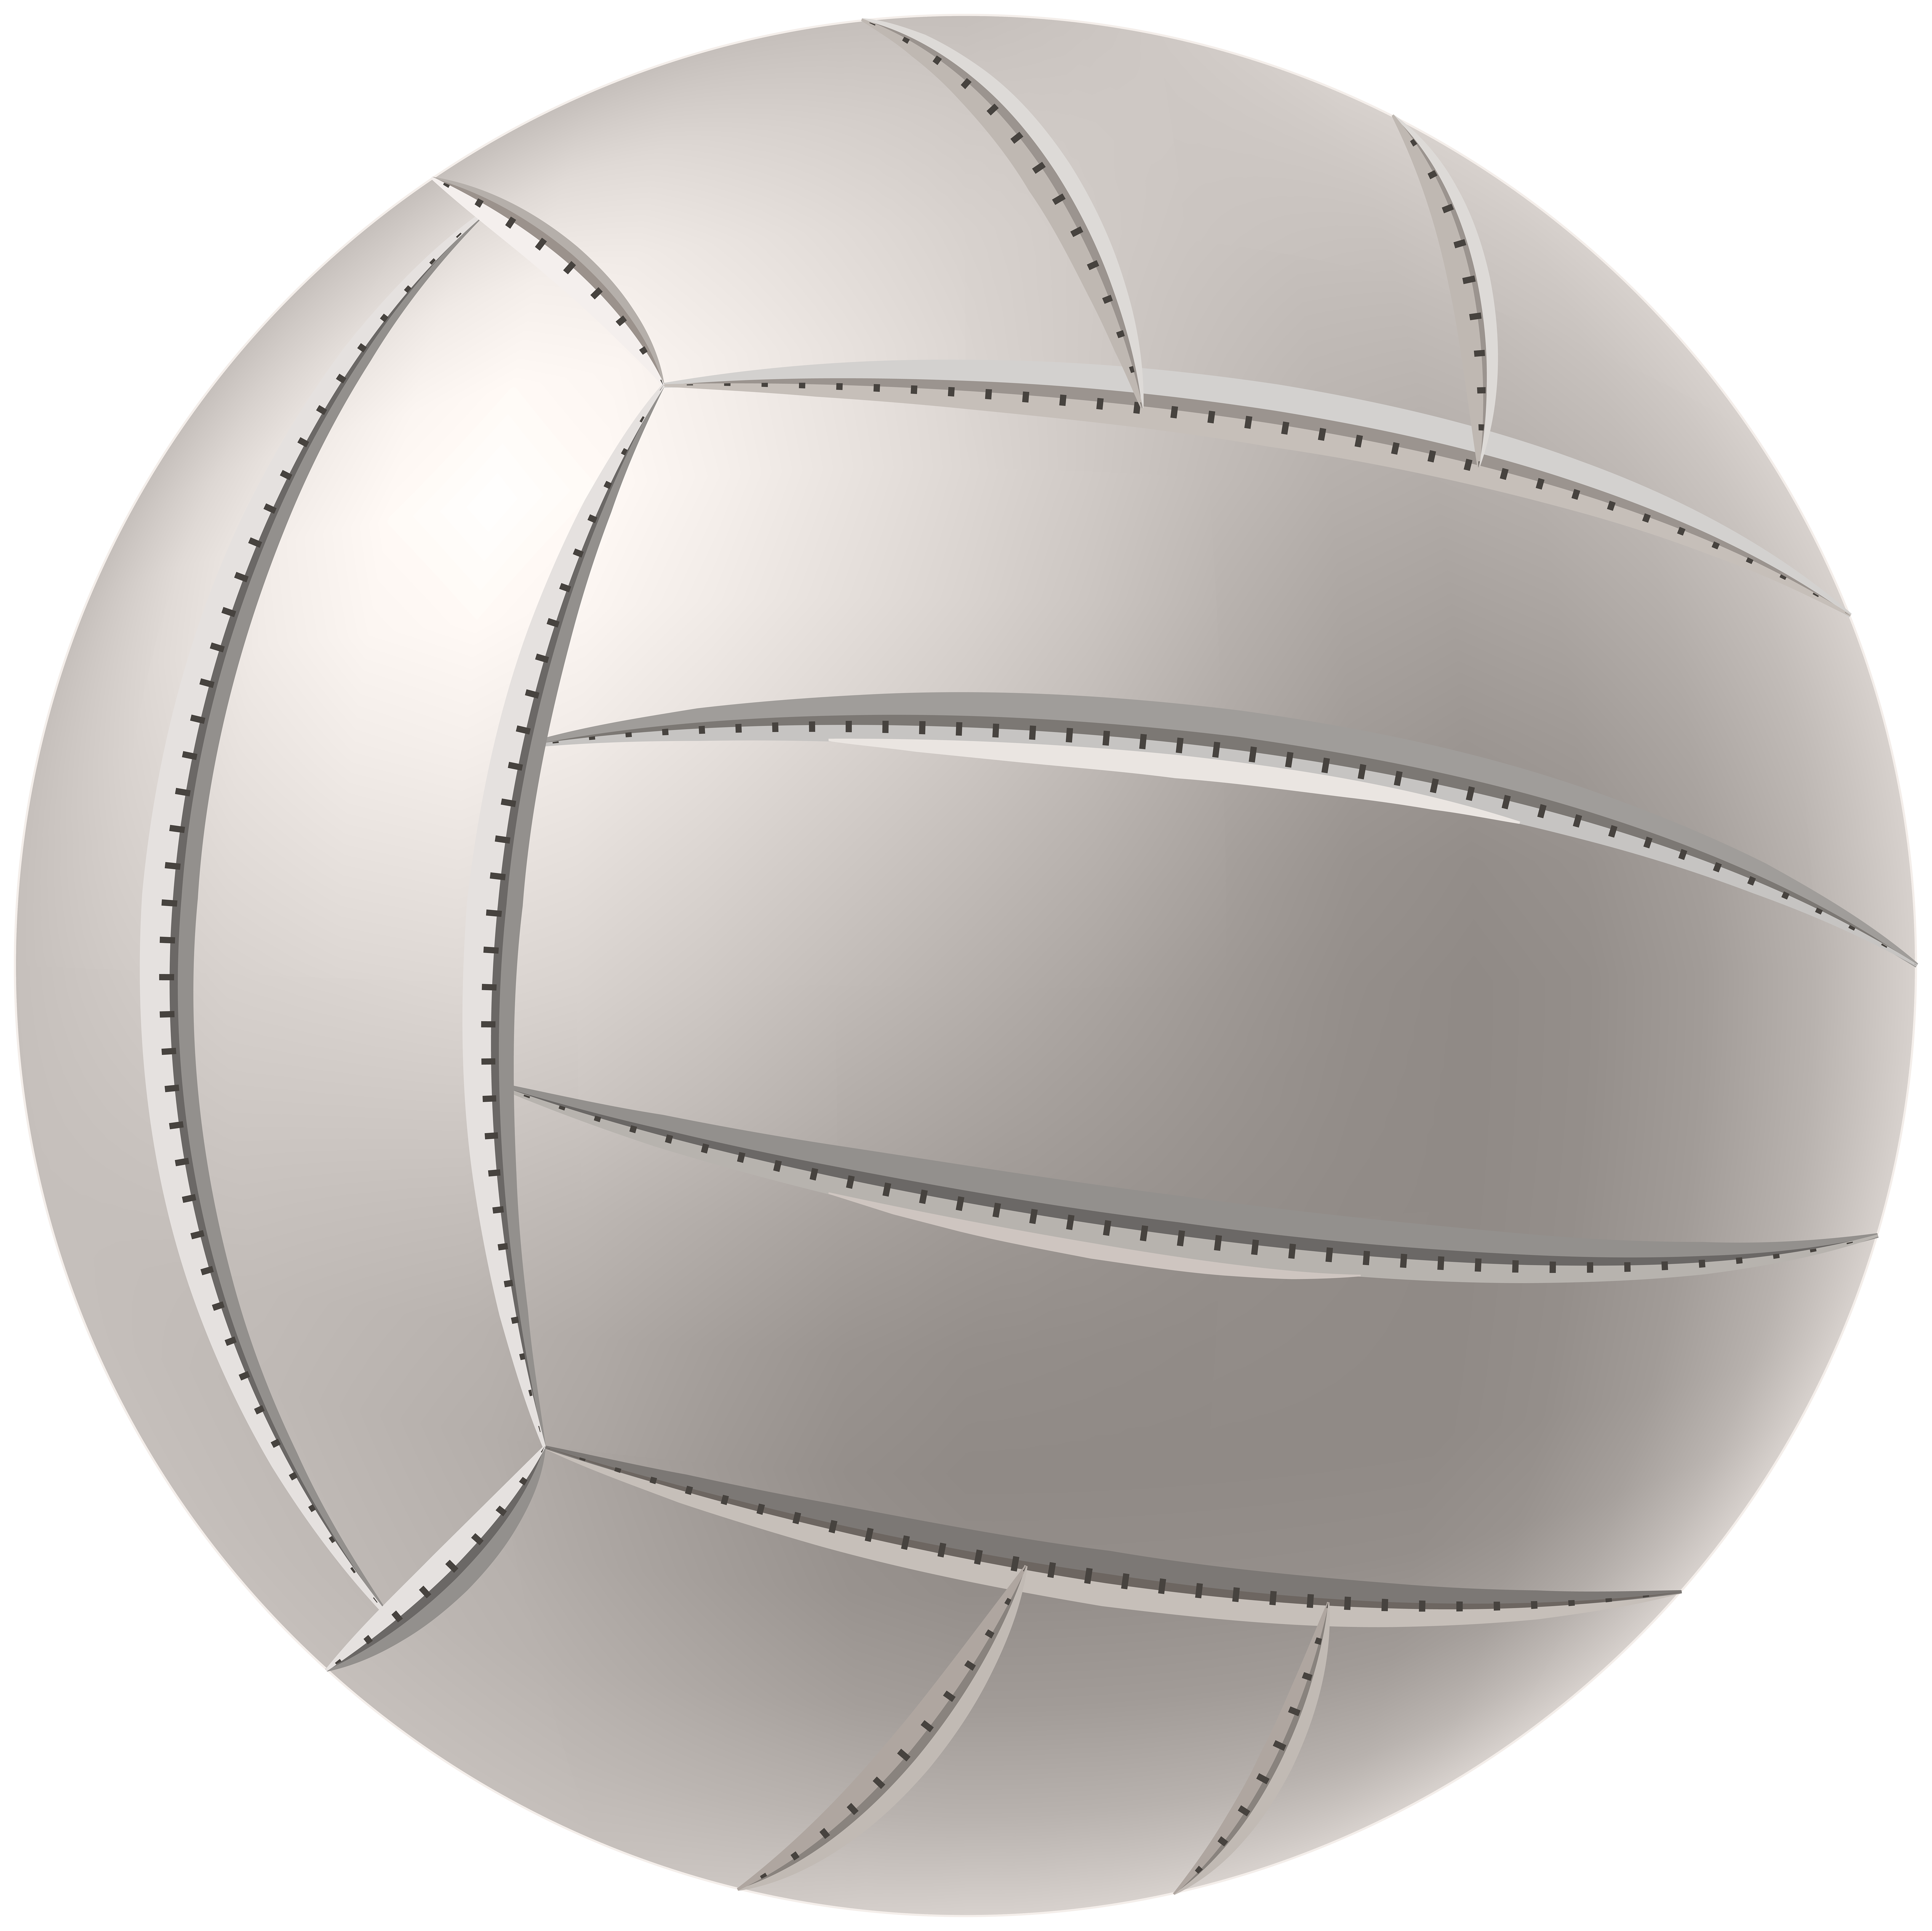 Png clip art image. Clipart hearts volleyball